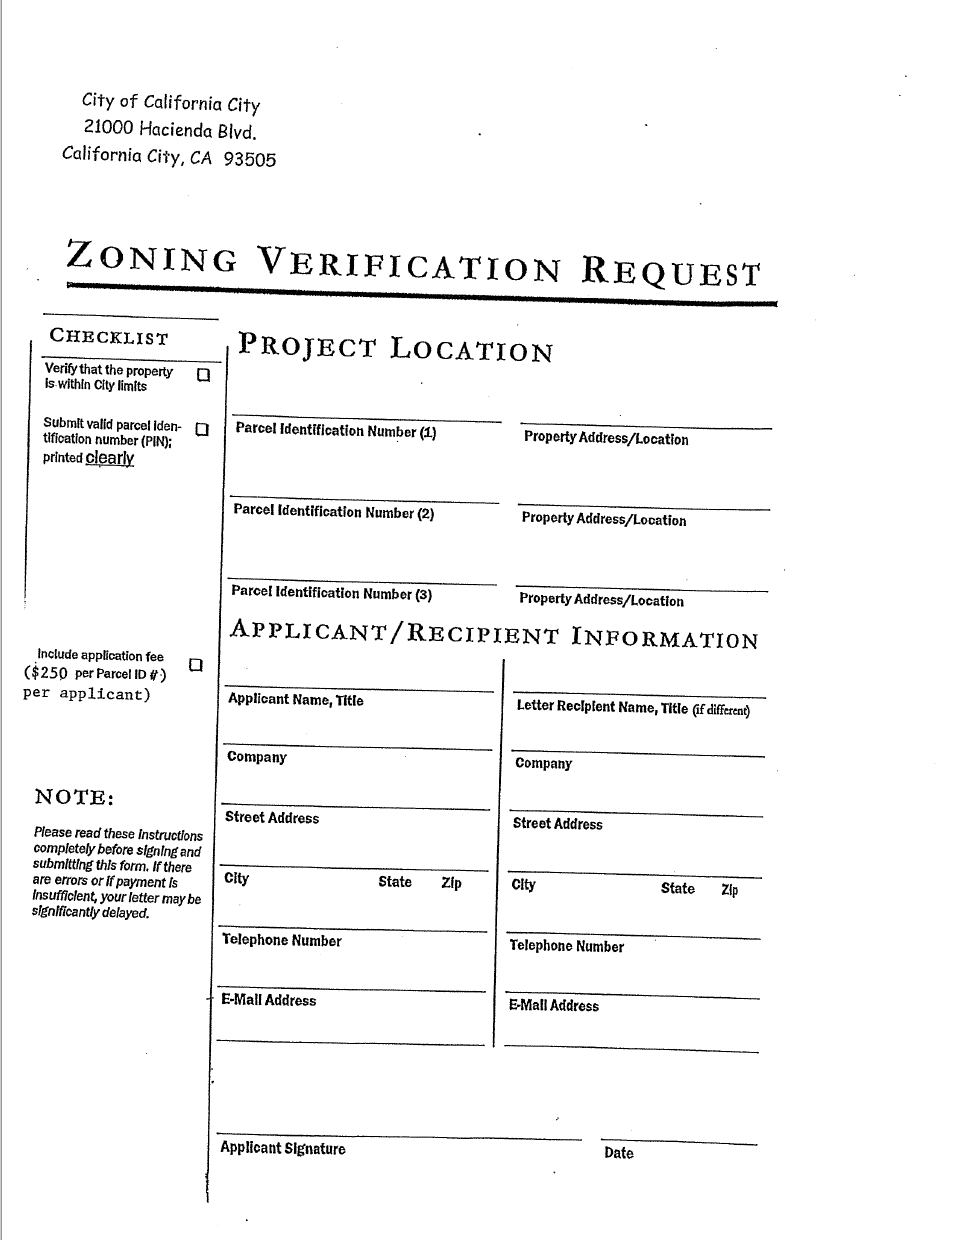 Zoning Verification Request.png